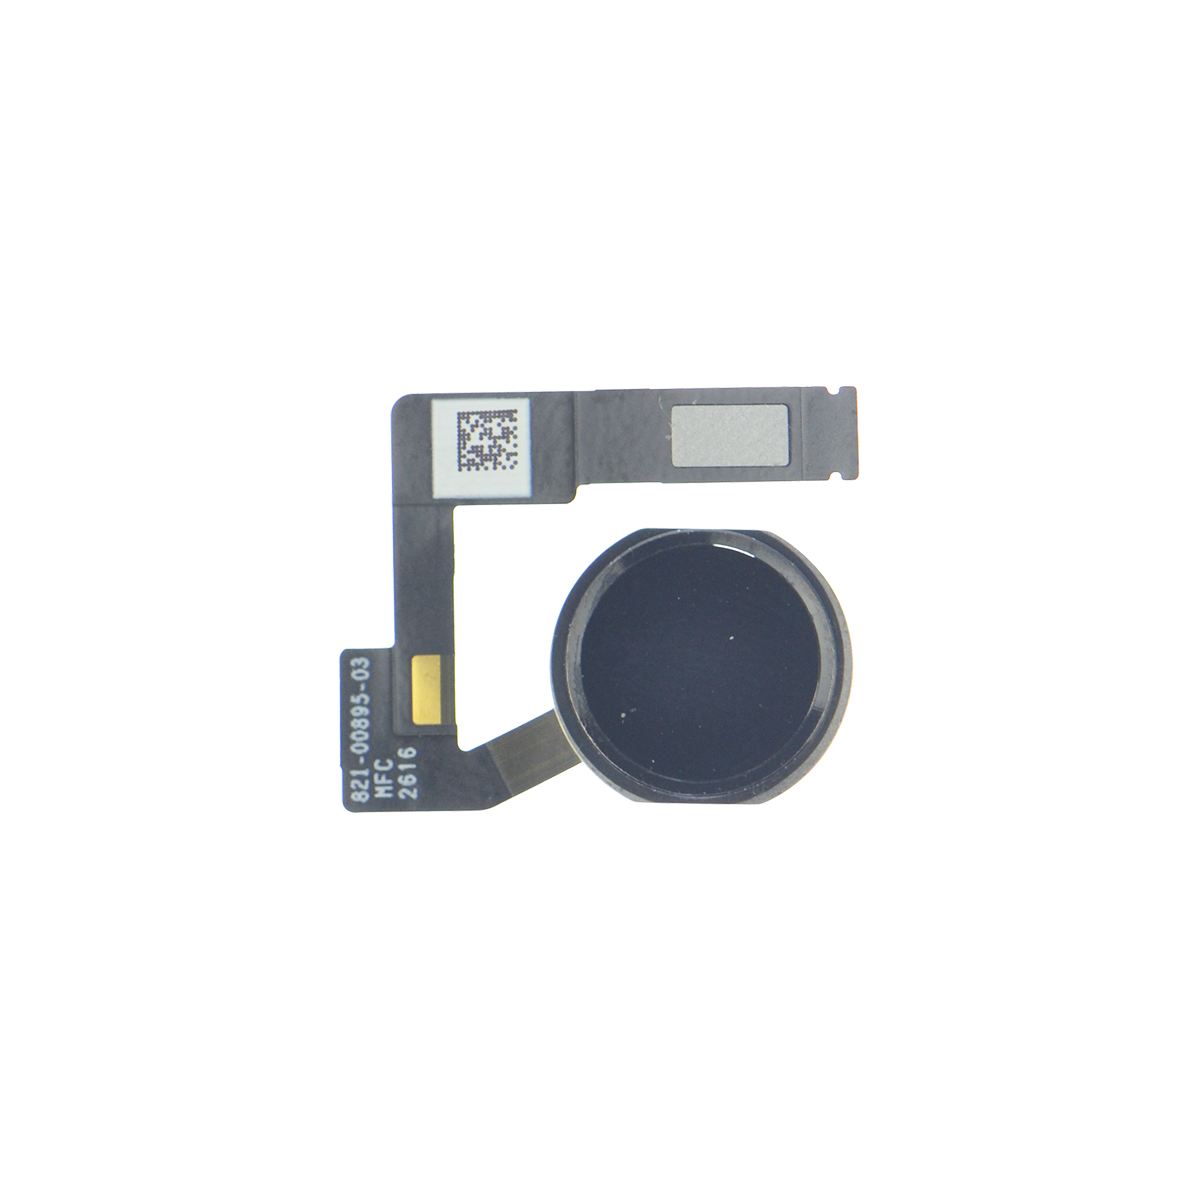 ipad-pro-10-5-home-button-touch-id-assembly-black_S4VPDKKC78LF.png